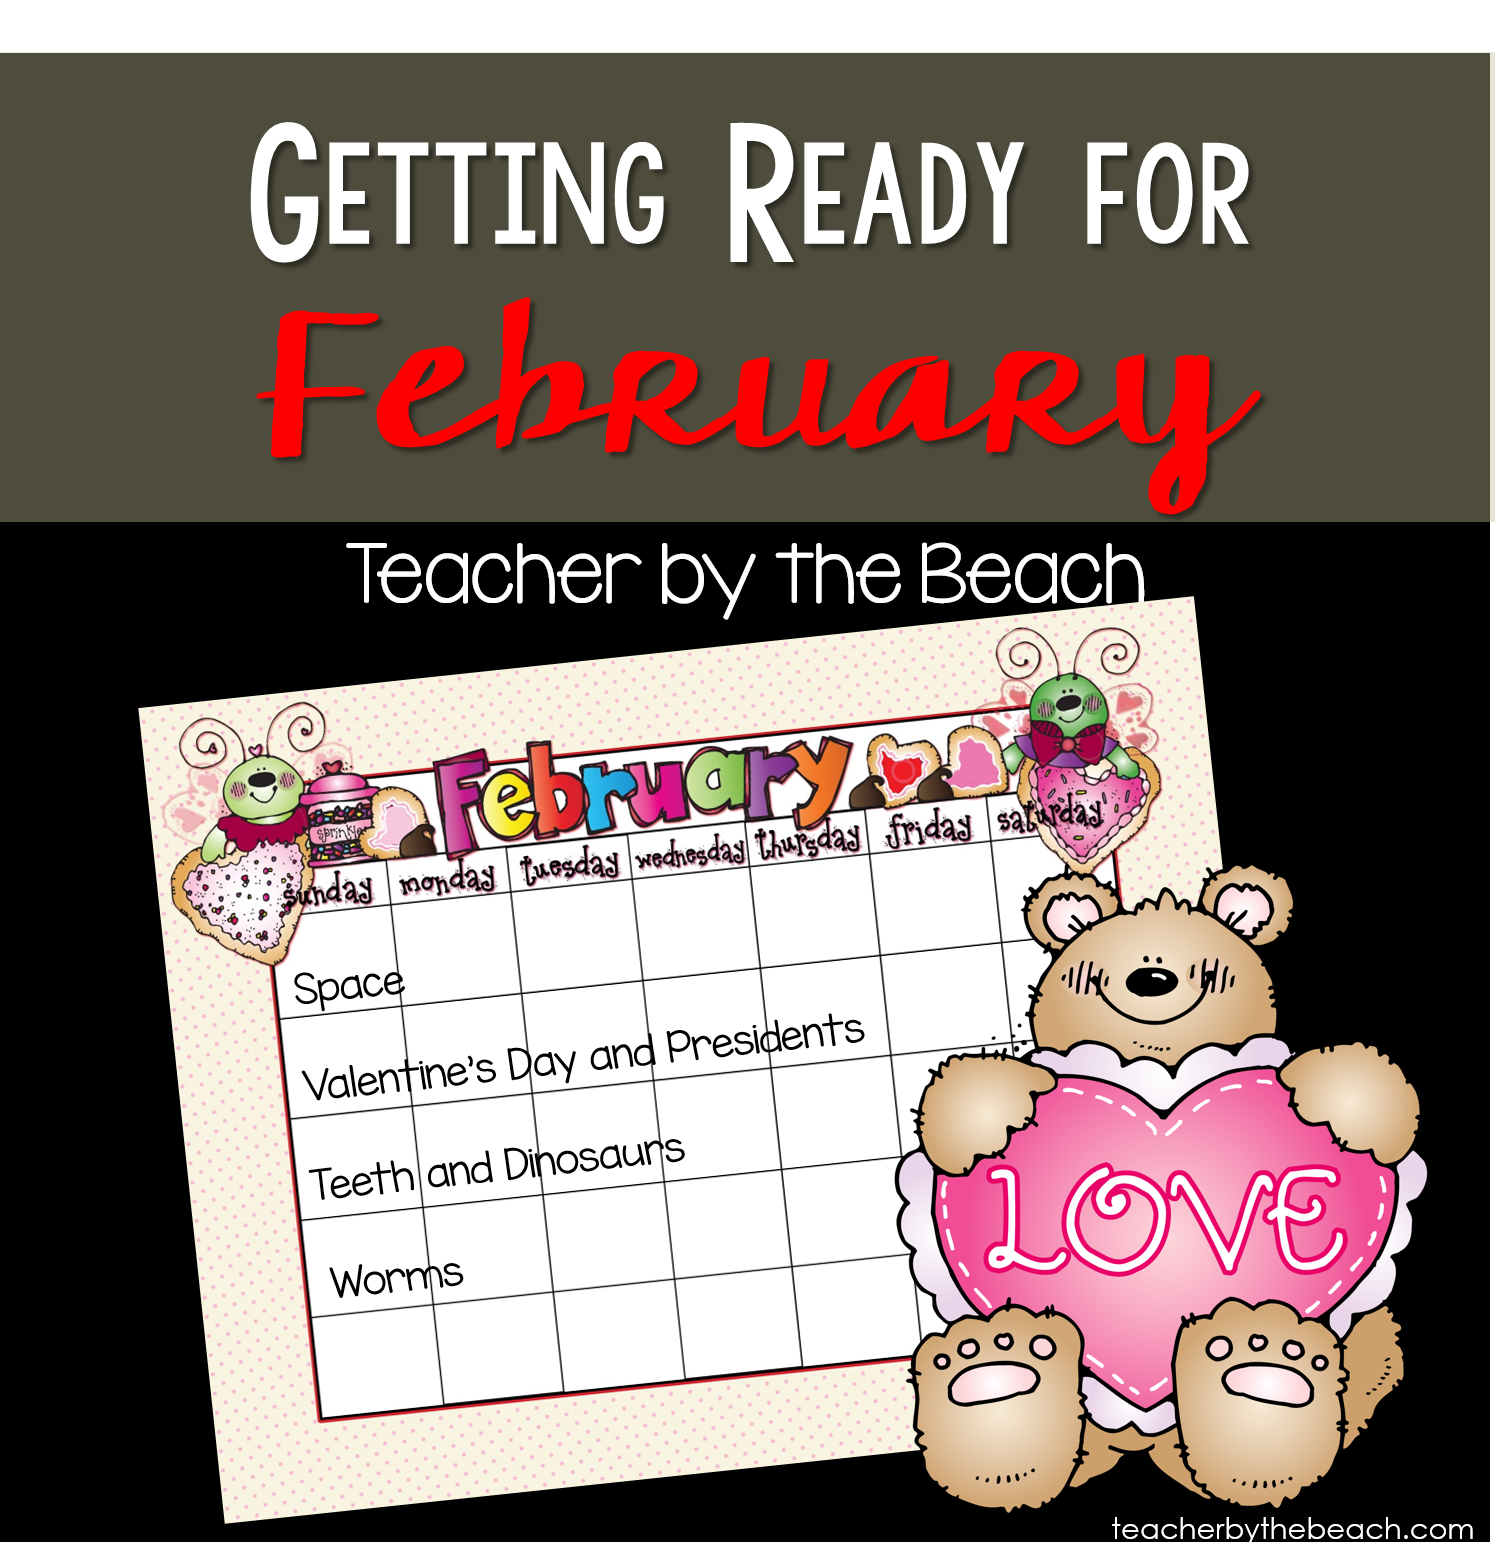 Getting Ready For February In 1st Grade